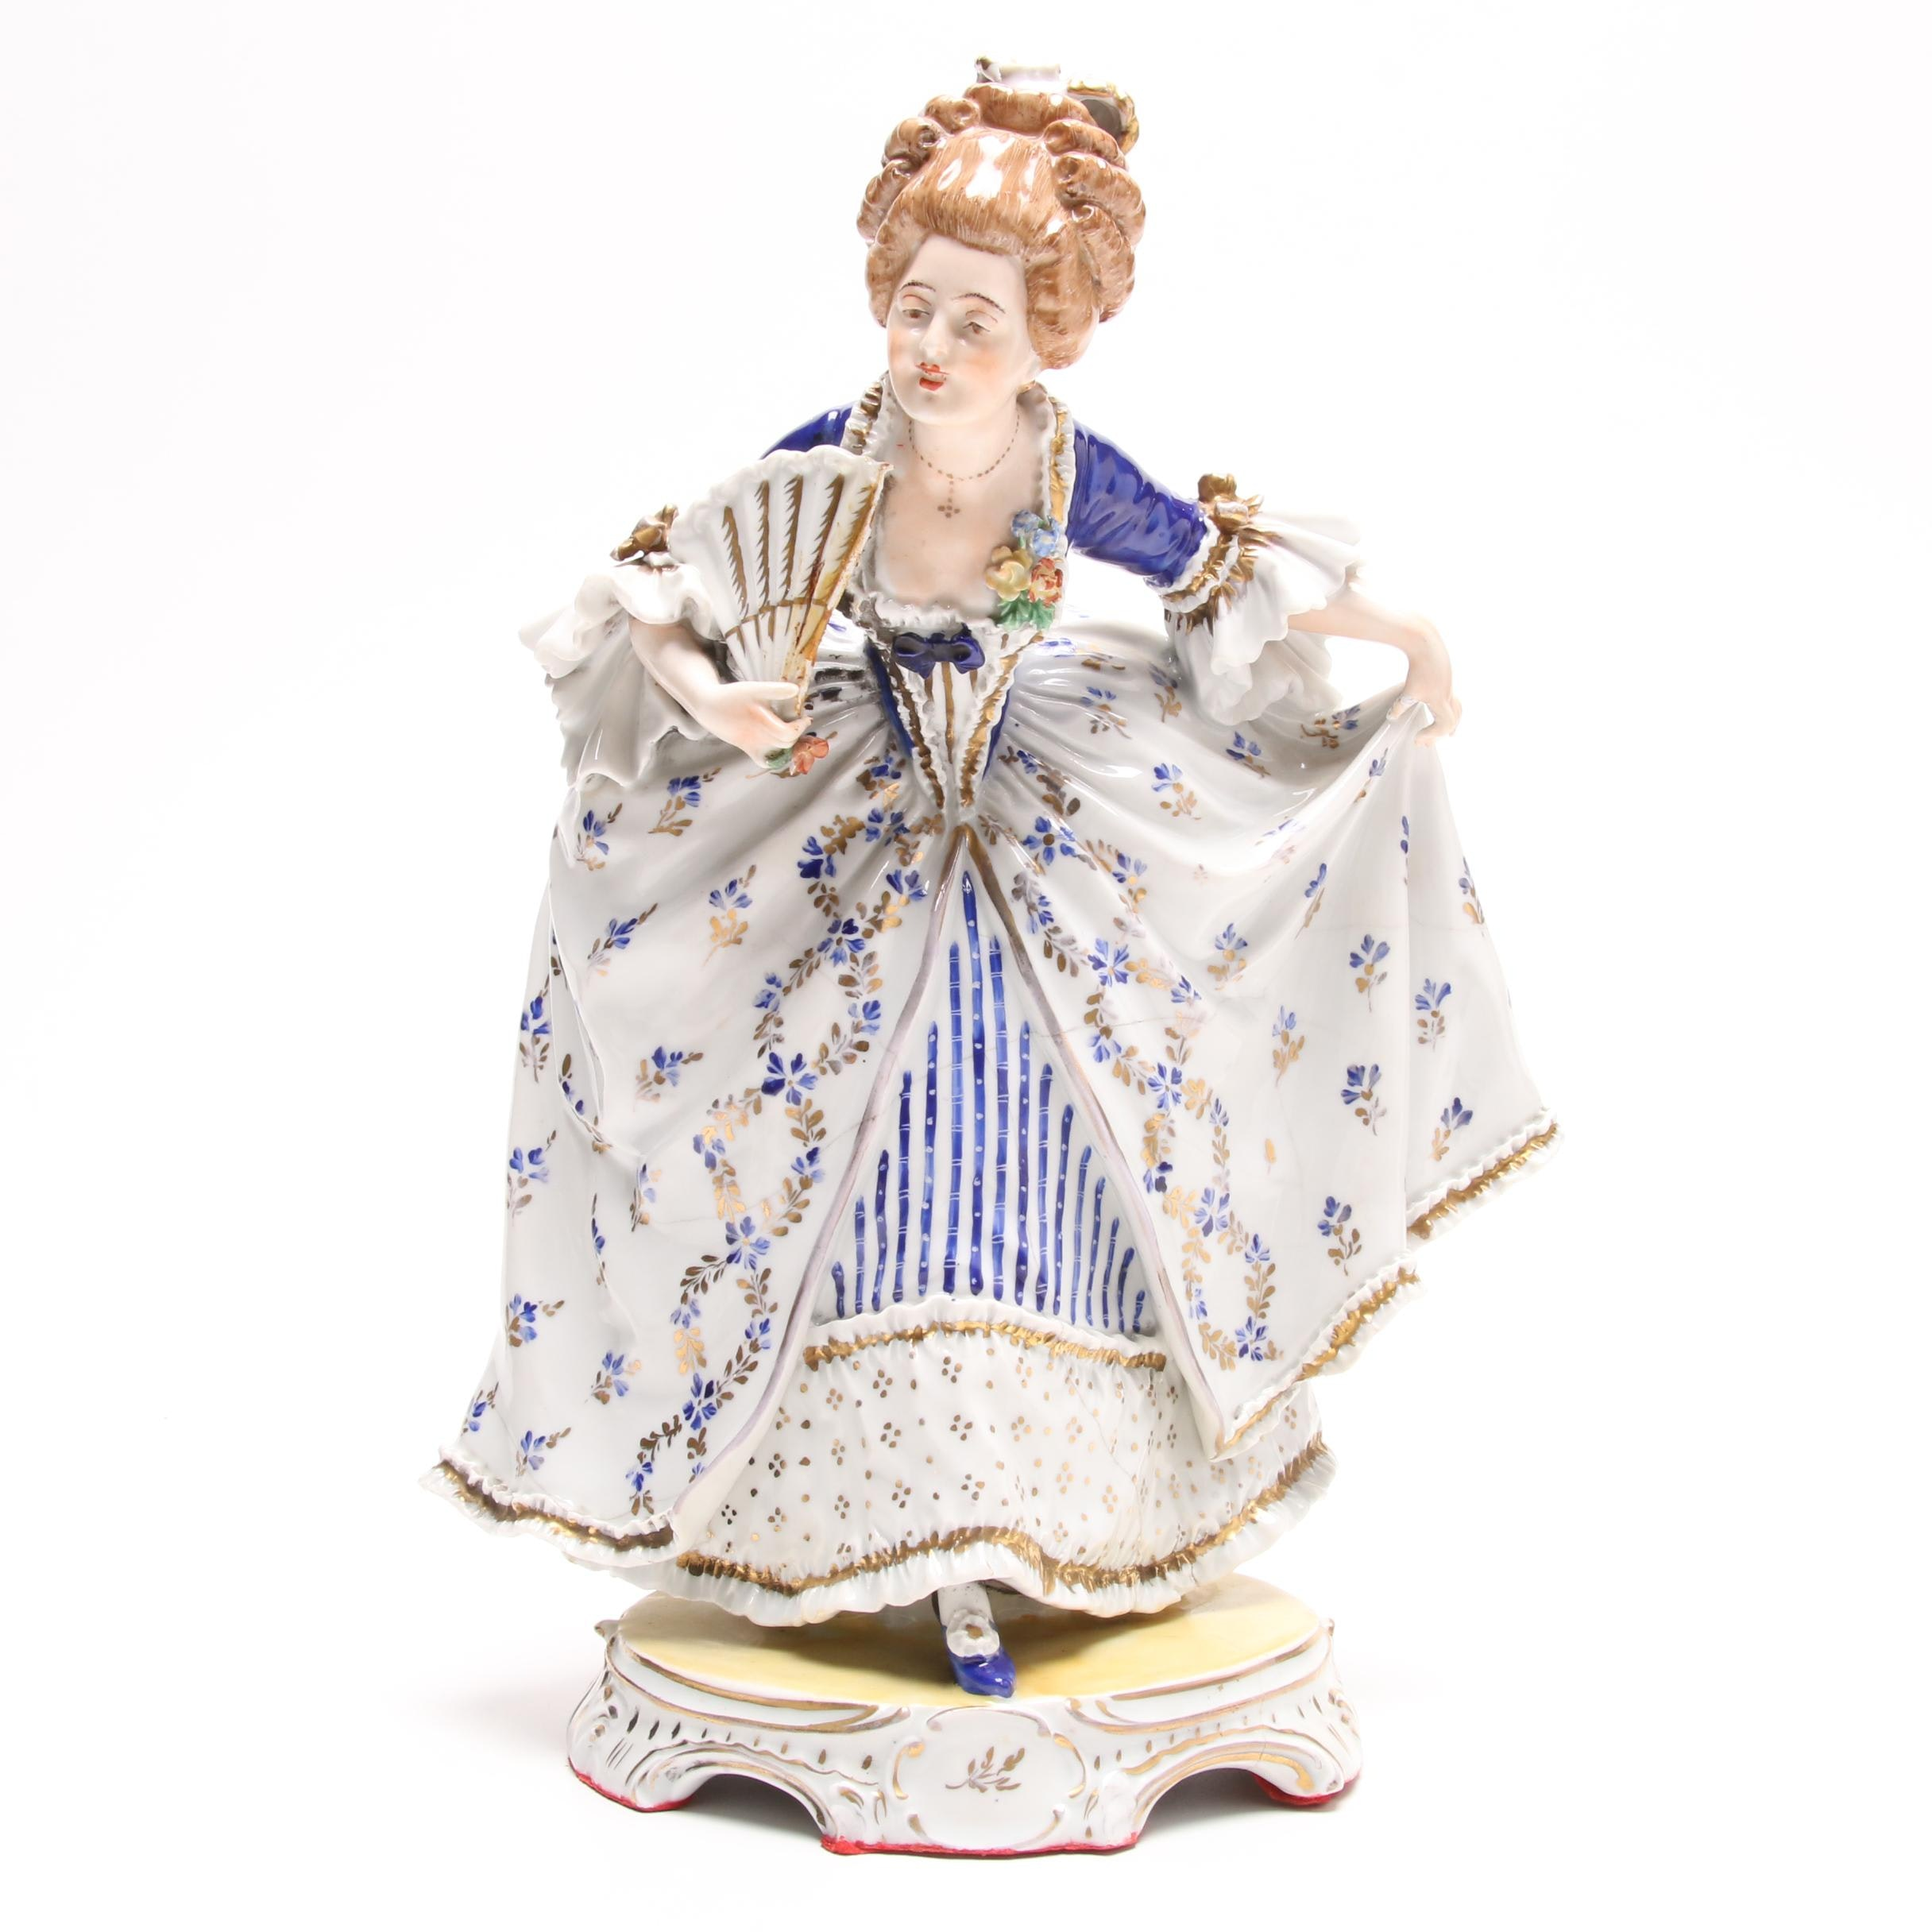 Carl Thieme Dresden Porcelain Figurine of a Woman, Early 20th Century